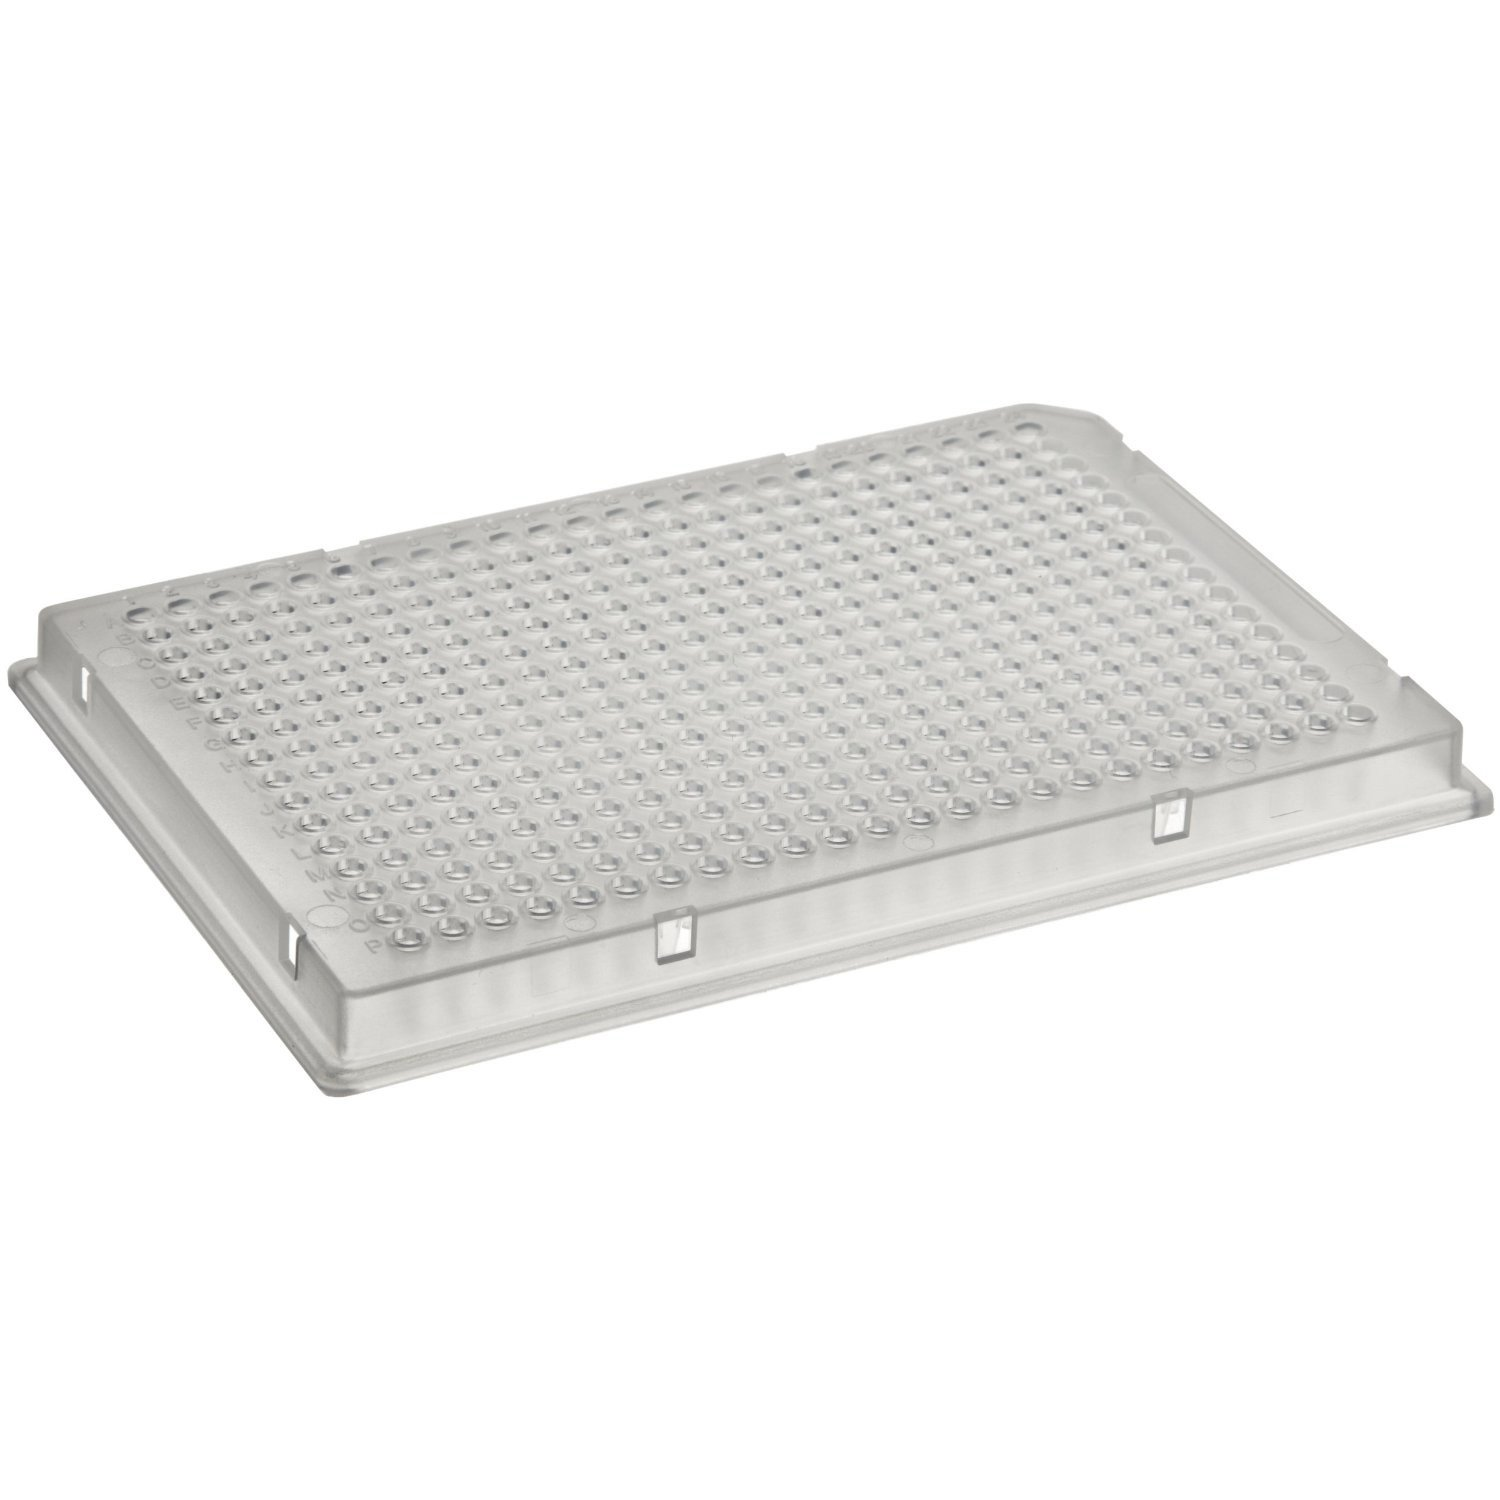 Corning 3701 Polystyrene Flat Bottom 384 Well Clear Microplate, With Lid, TC-Treated (Case of 100)